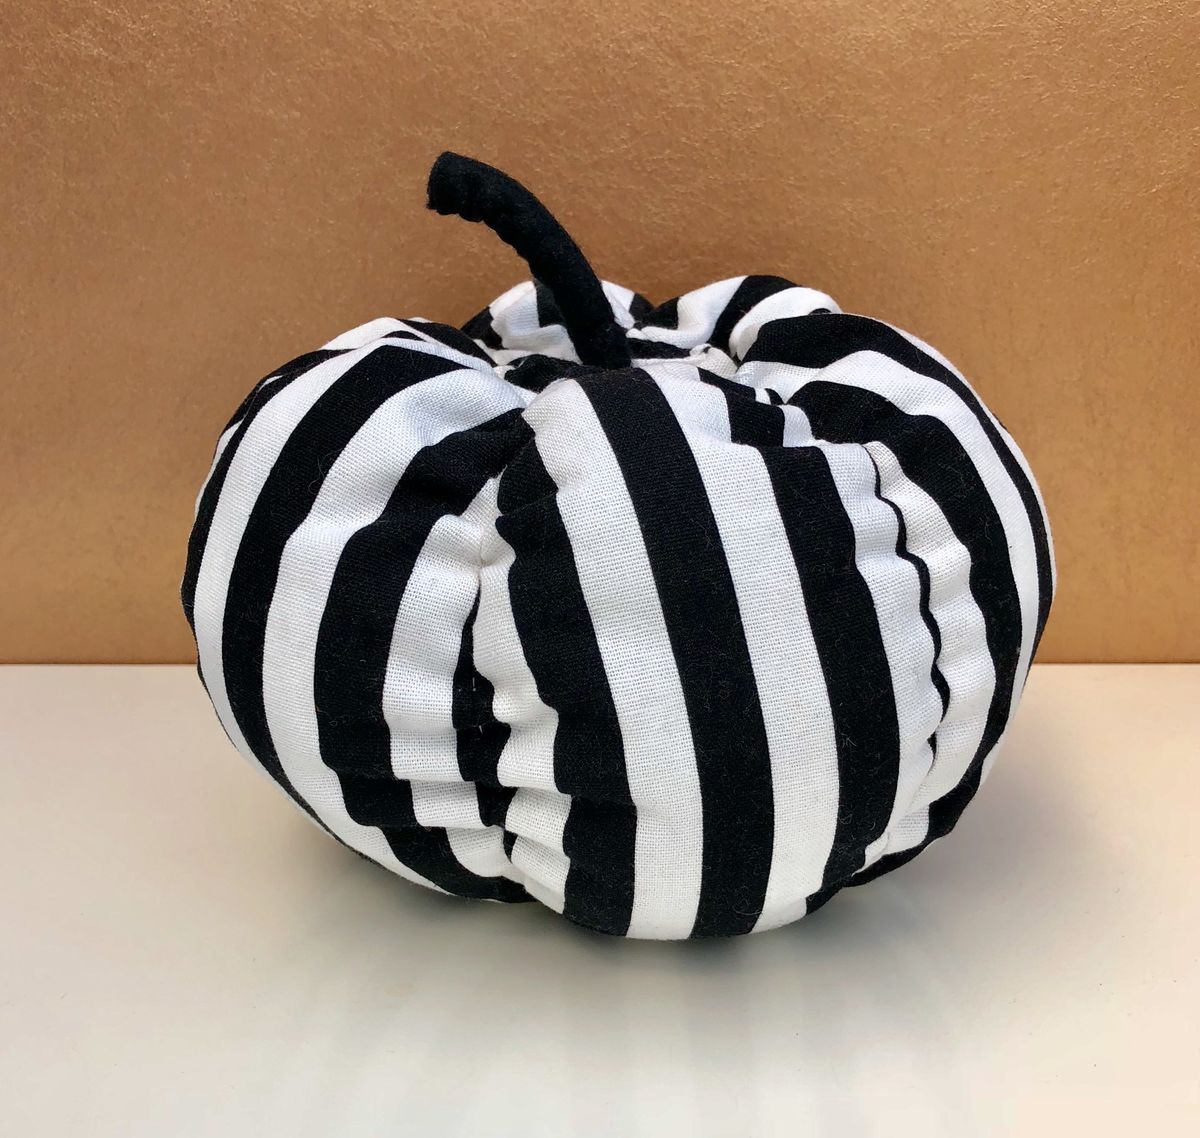 Decorative patterned pumpkin - product images  of